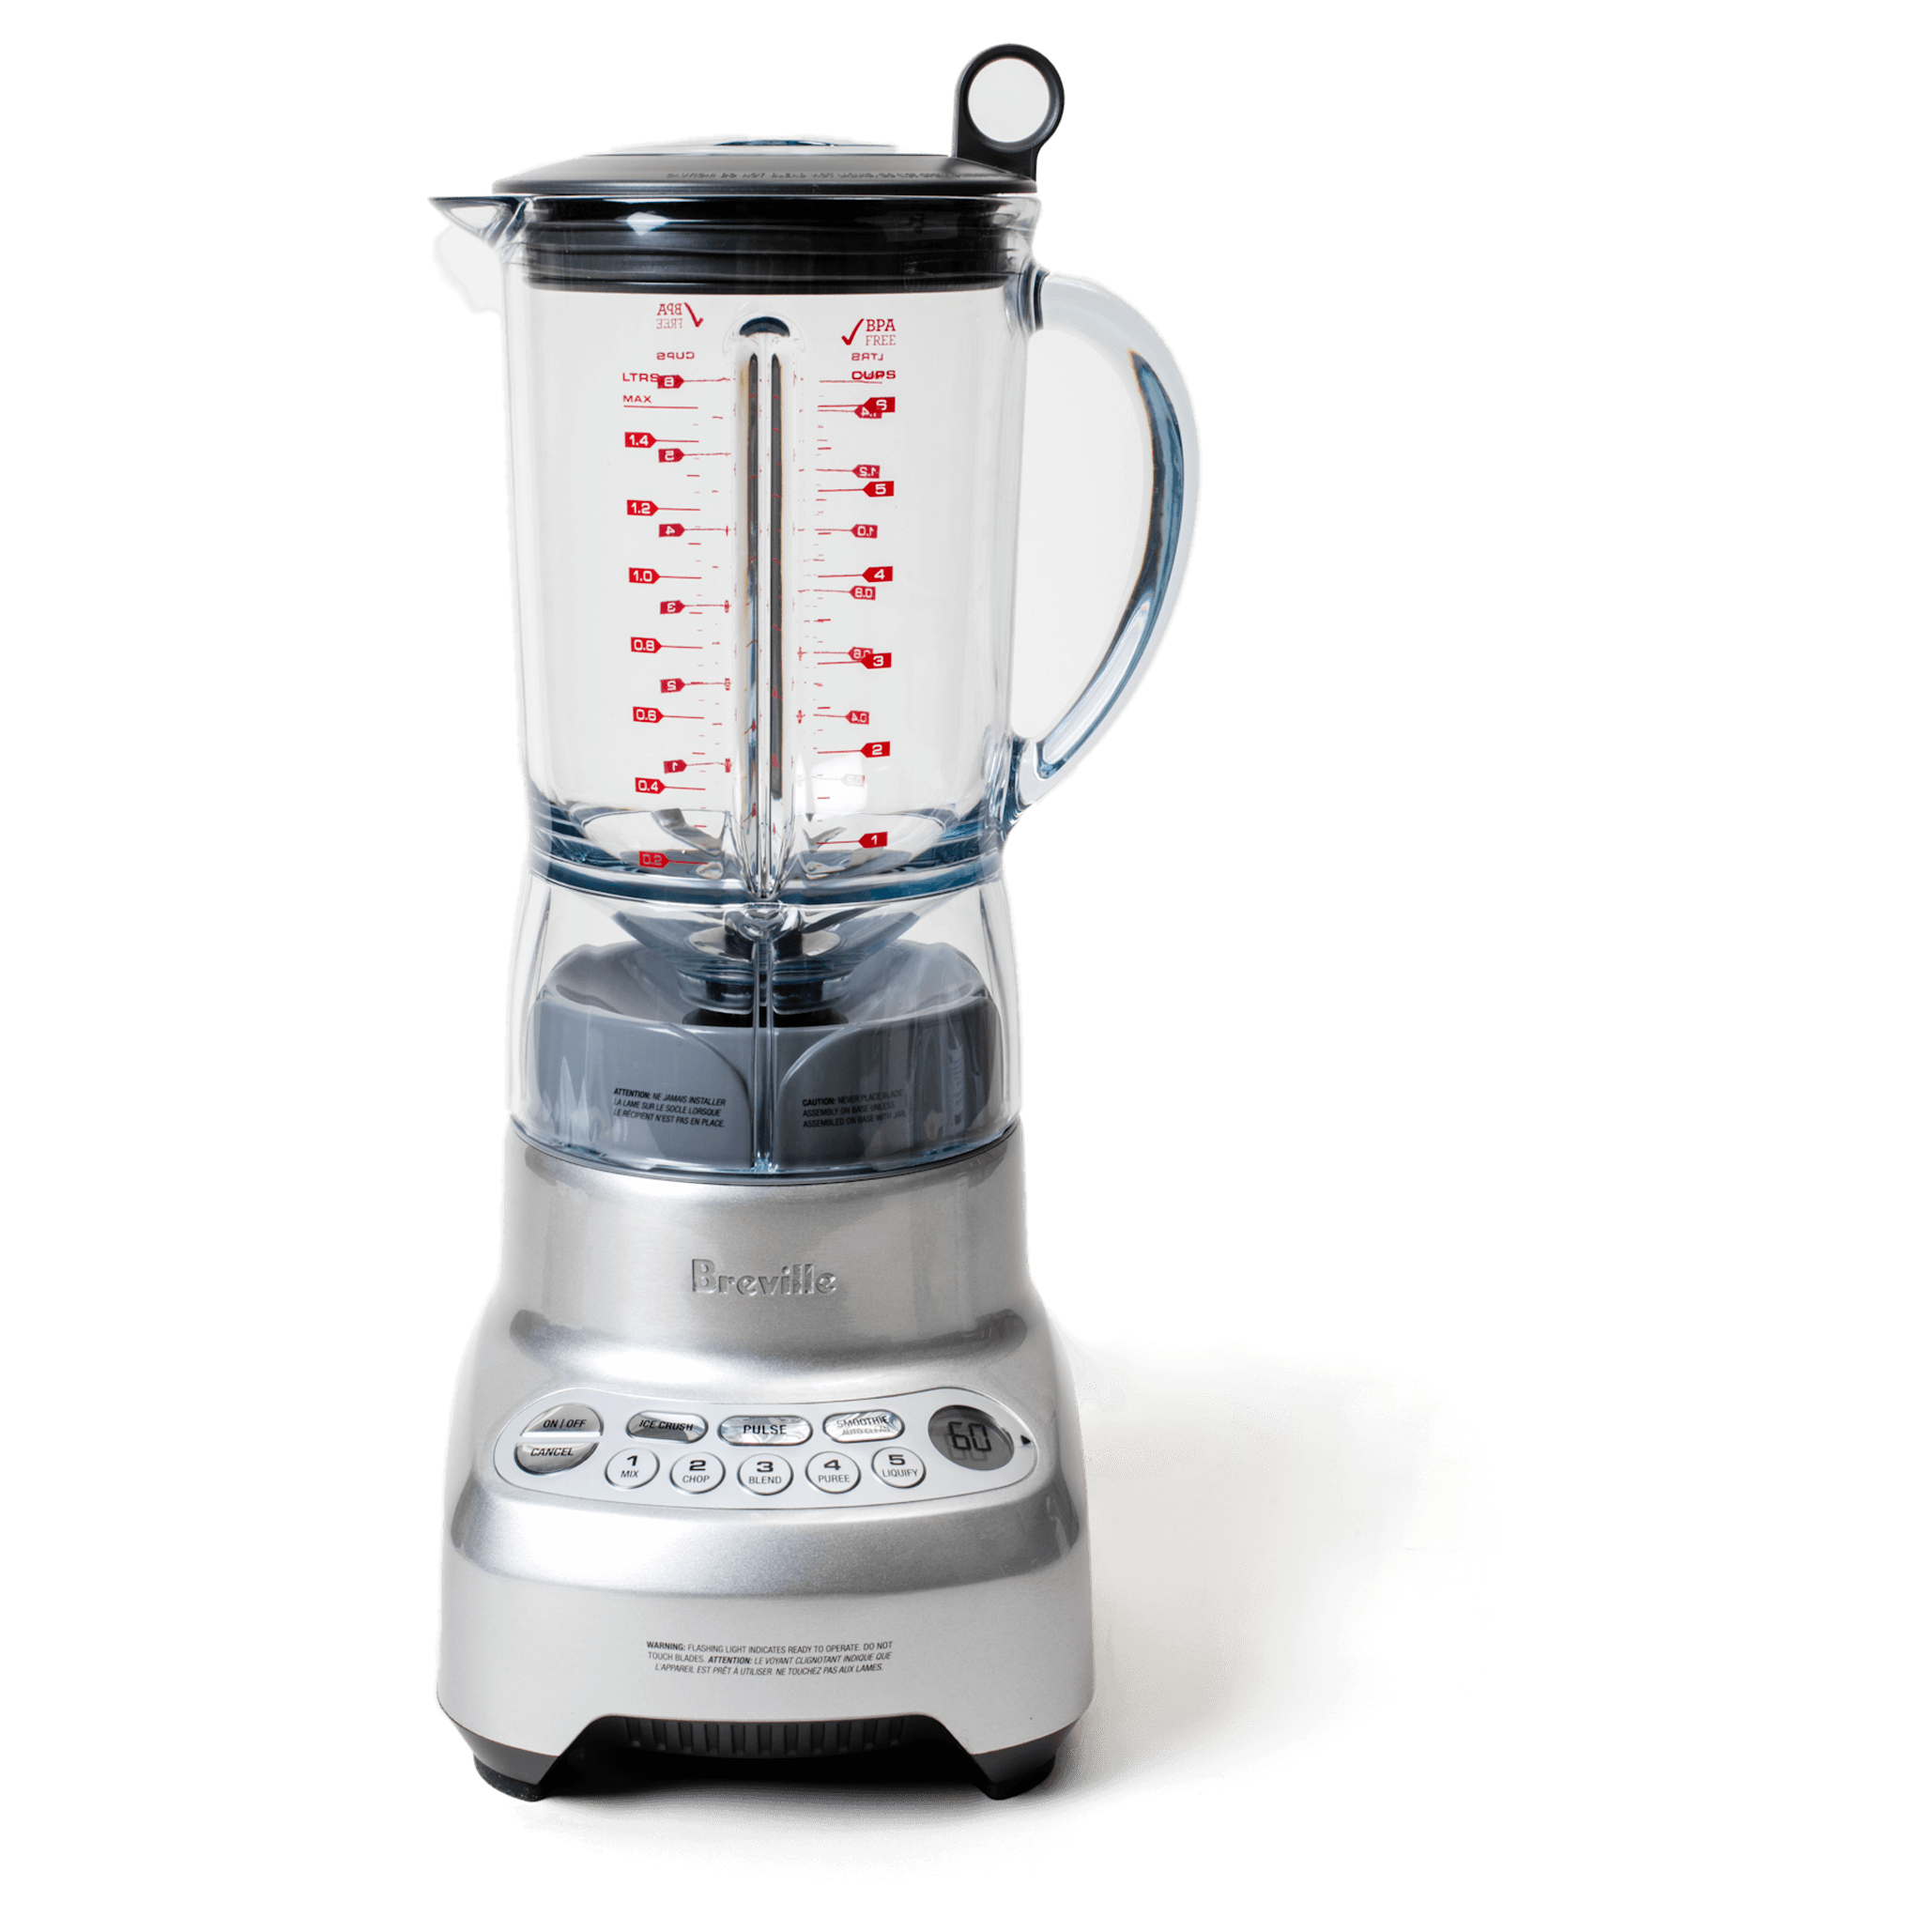 Uncategorized Cooks Kitchen Appliances browse equipment reviews for small appliances cooks illustrated midpriced blenders